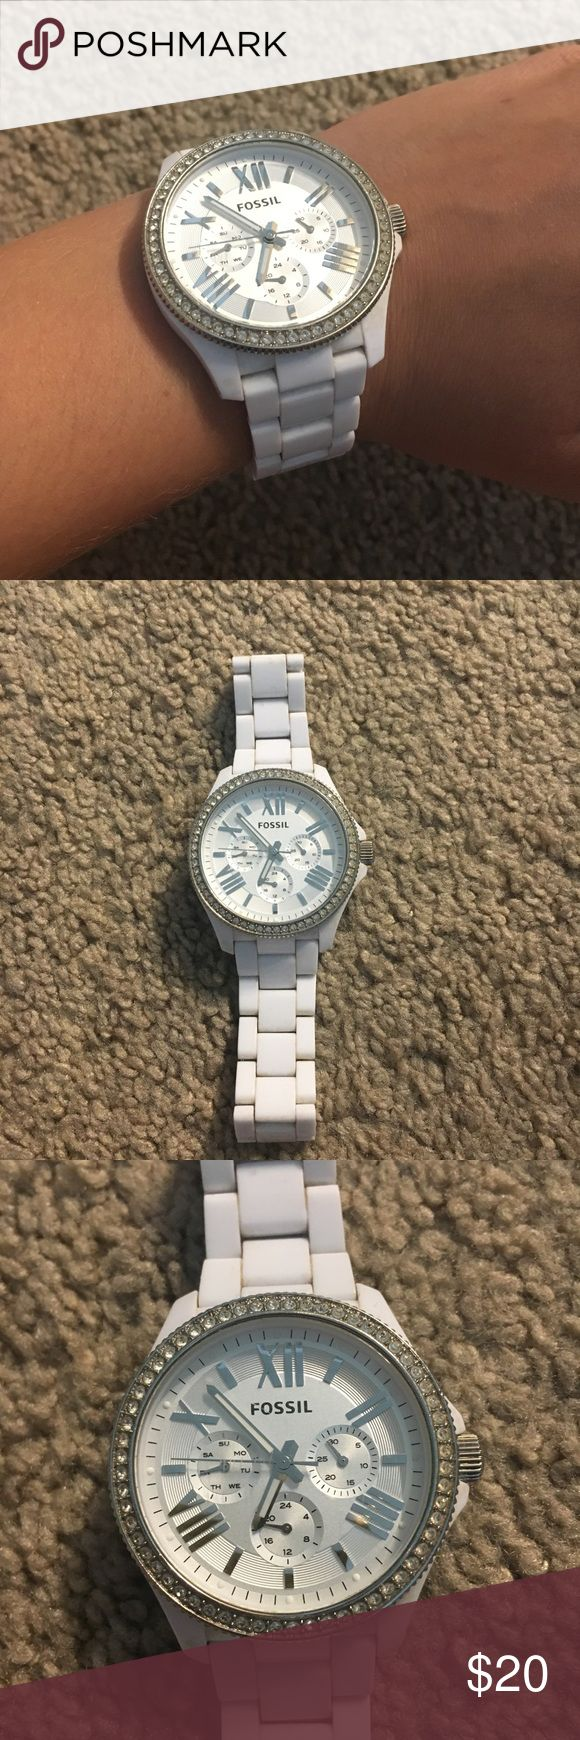 White Fossil Watch with Silver Crystals Has been worn a good amount of times and needs a new battery, but overall it looks fine Fossil Accessories Watches